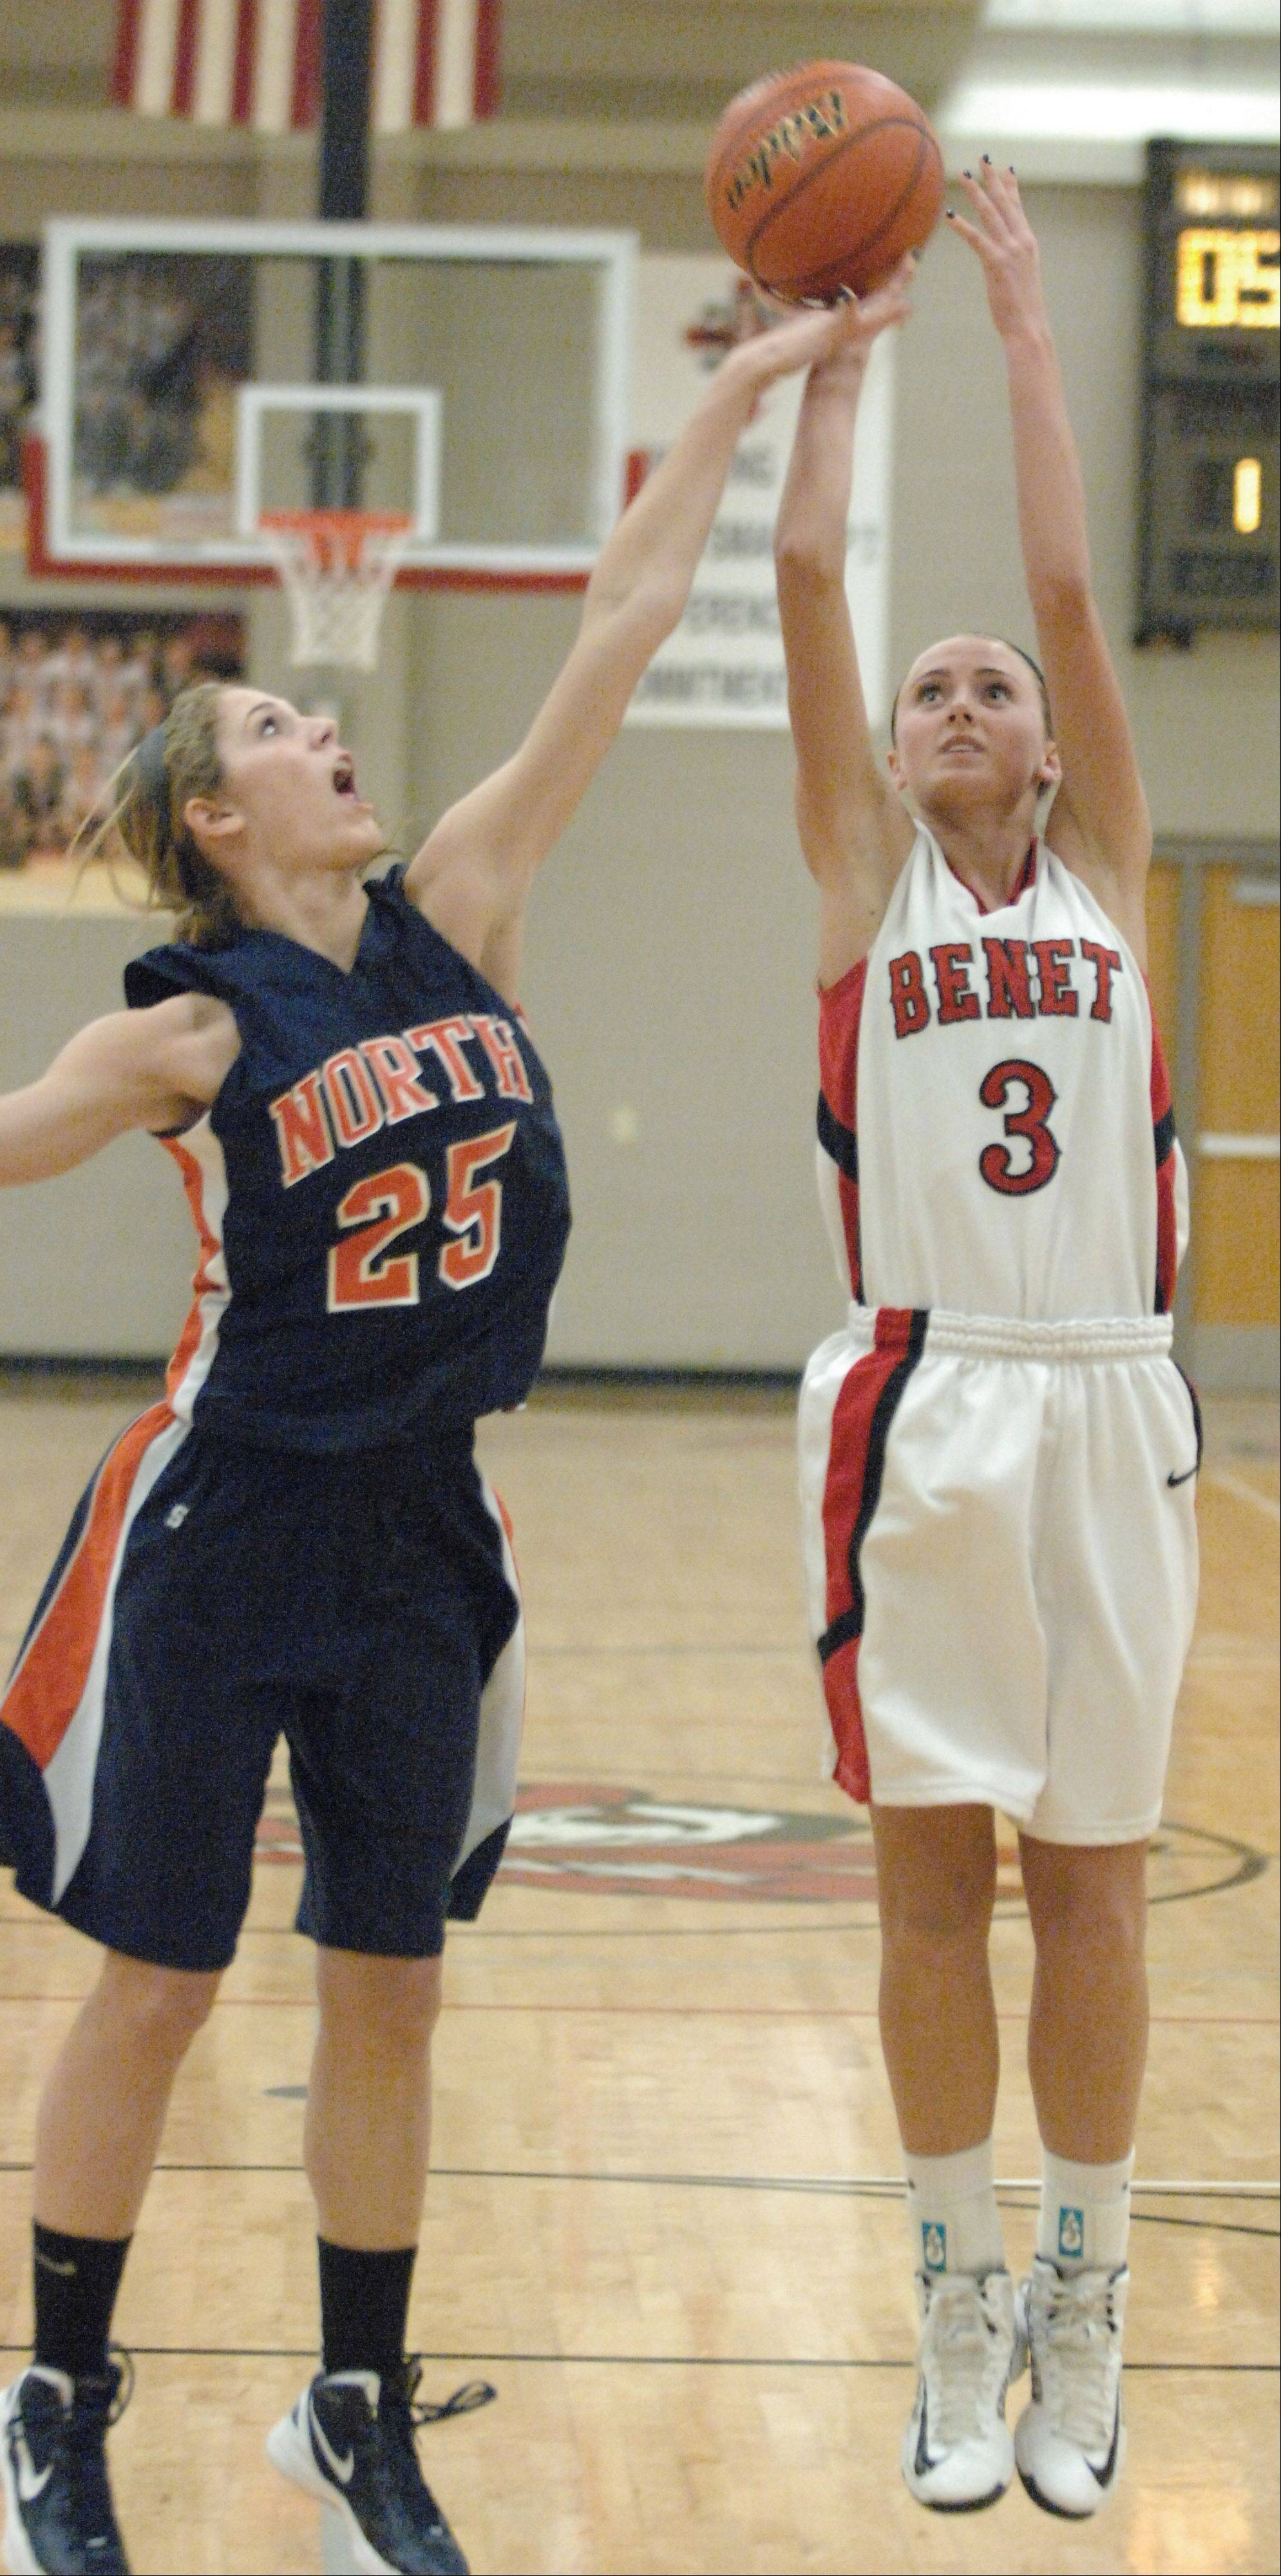 Kayla Sharples of Naperville North and Christen Prasse of Benet go up for a rebound during game action in Lisle Tuesday. This took place during the class 4A regional.